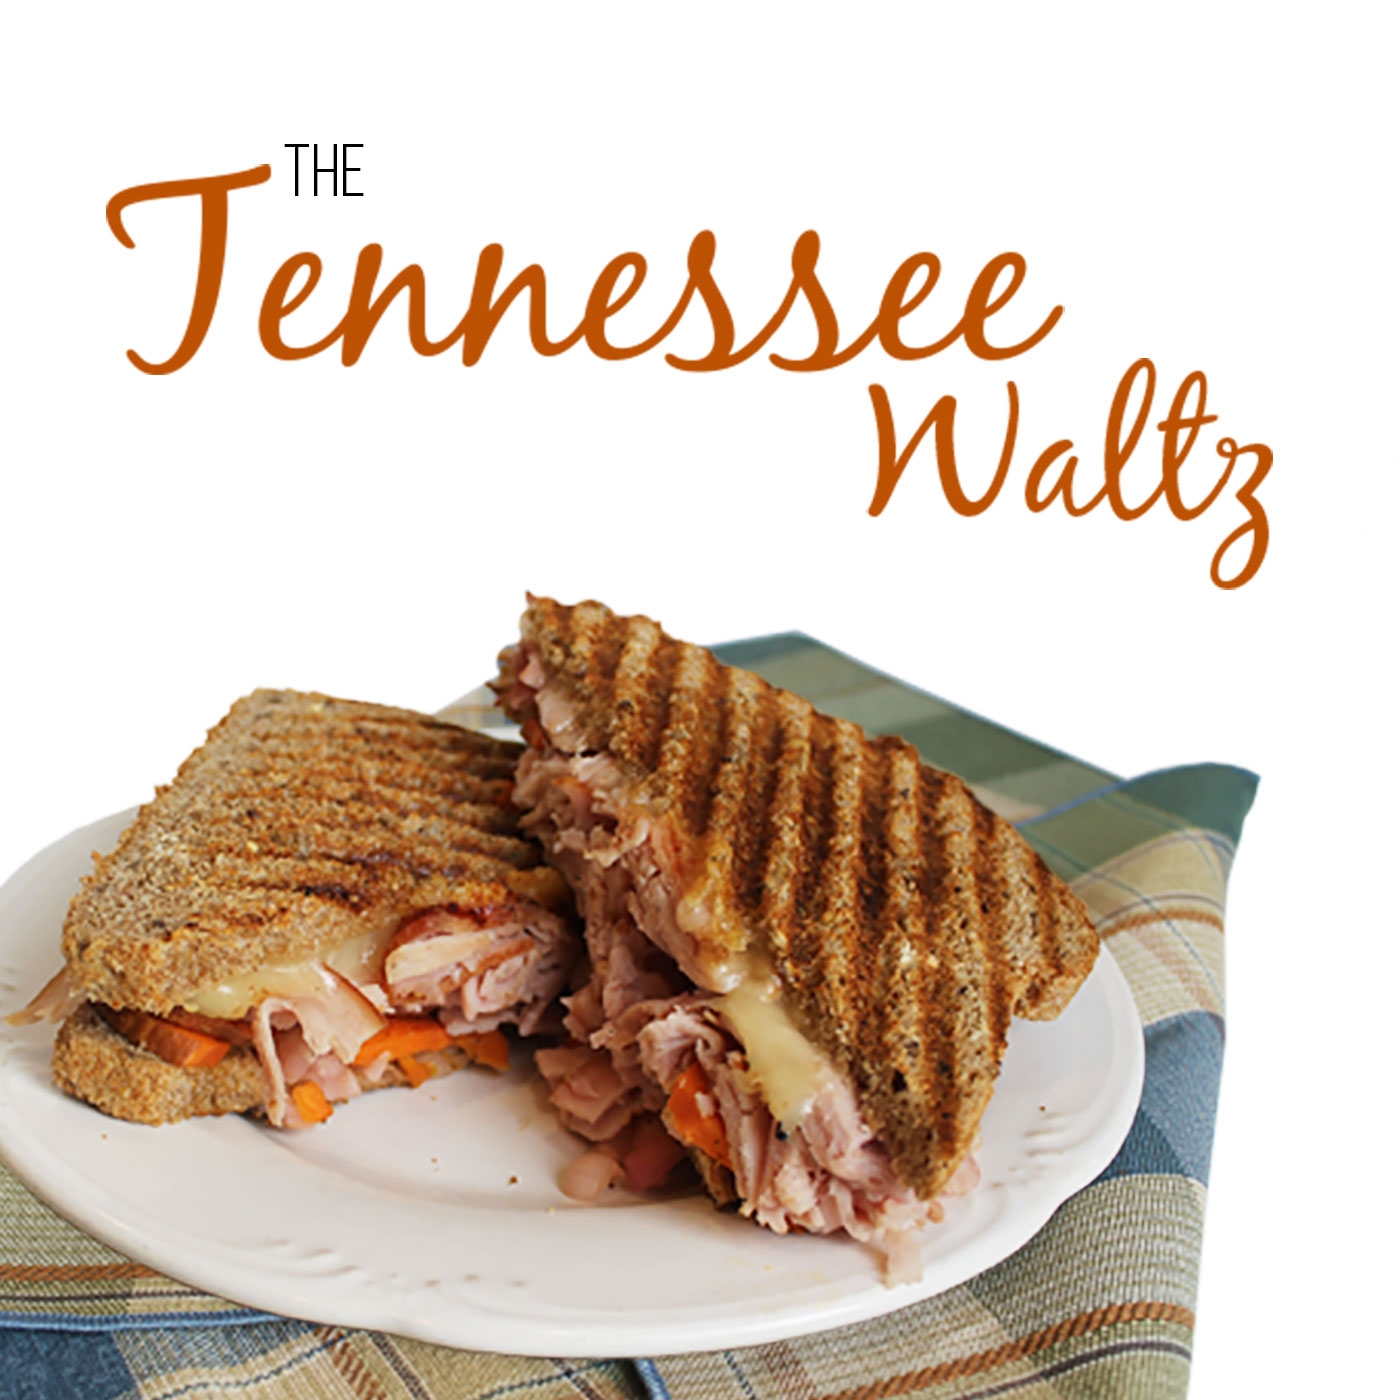 The Tennessee Waltz